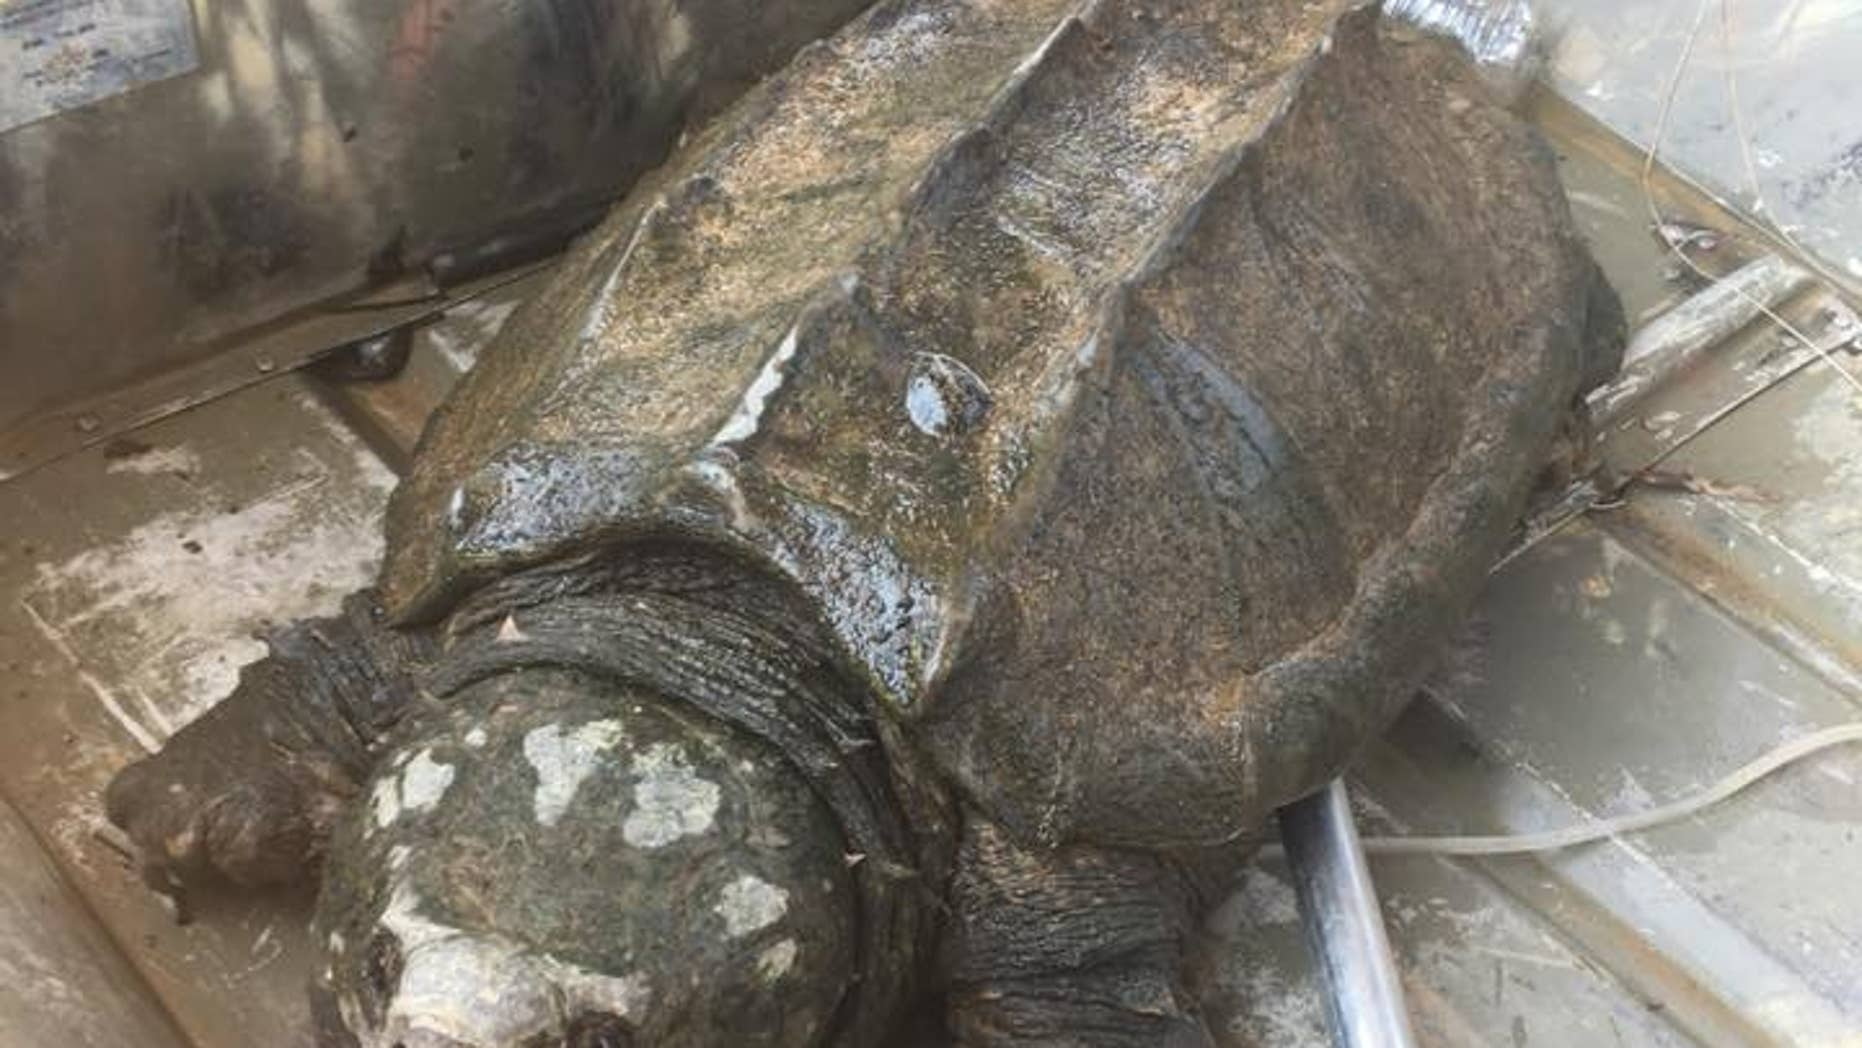 Two fishermen in Oklahoma came across the alligator snapping turtle while fishing with a trotline.